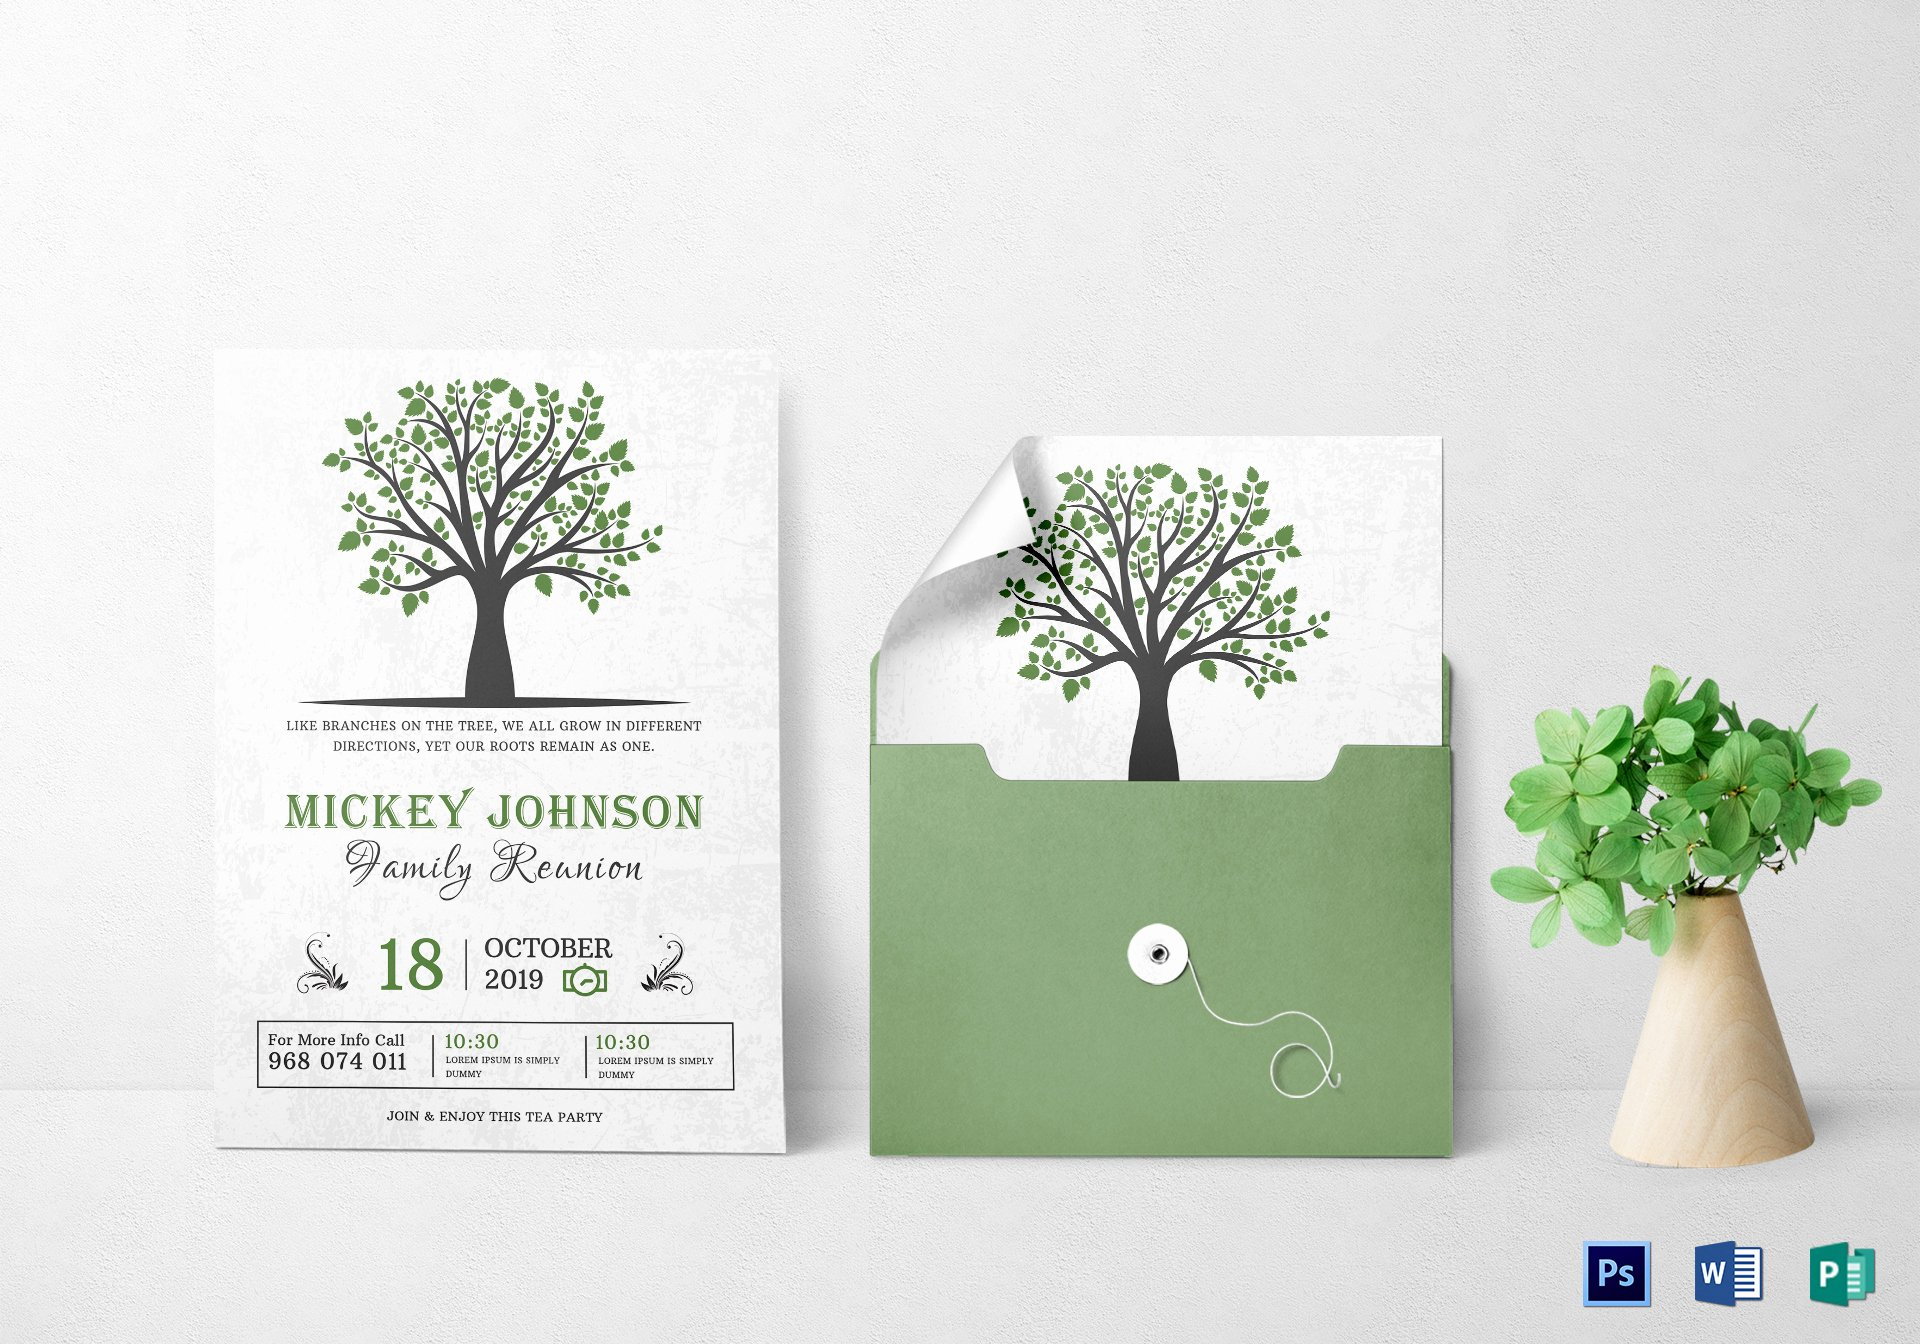 Family Reunion Invitations Templates Best Of Classic Family Reunion Invitation Design Template In Word